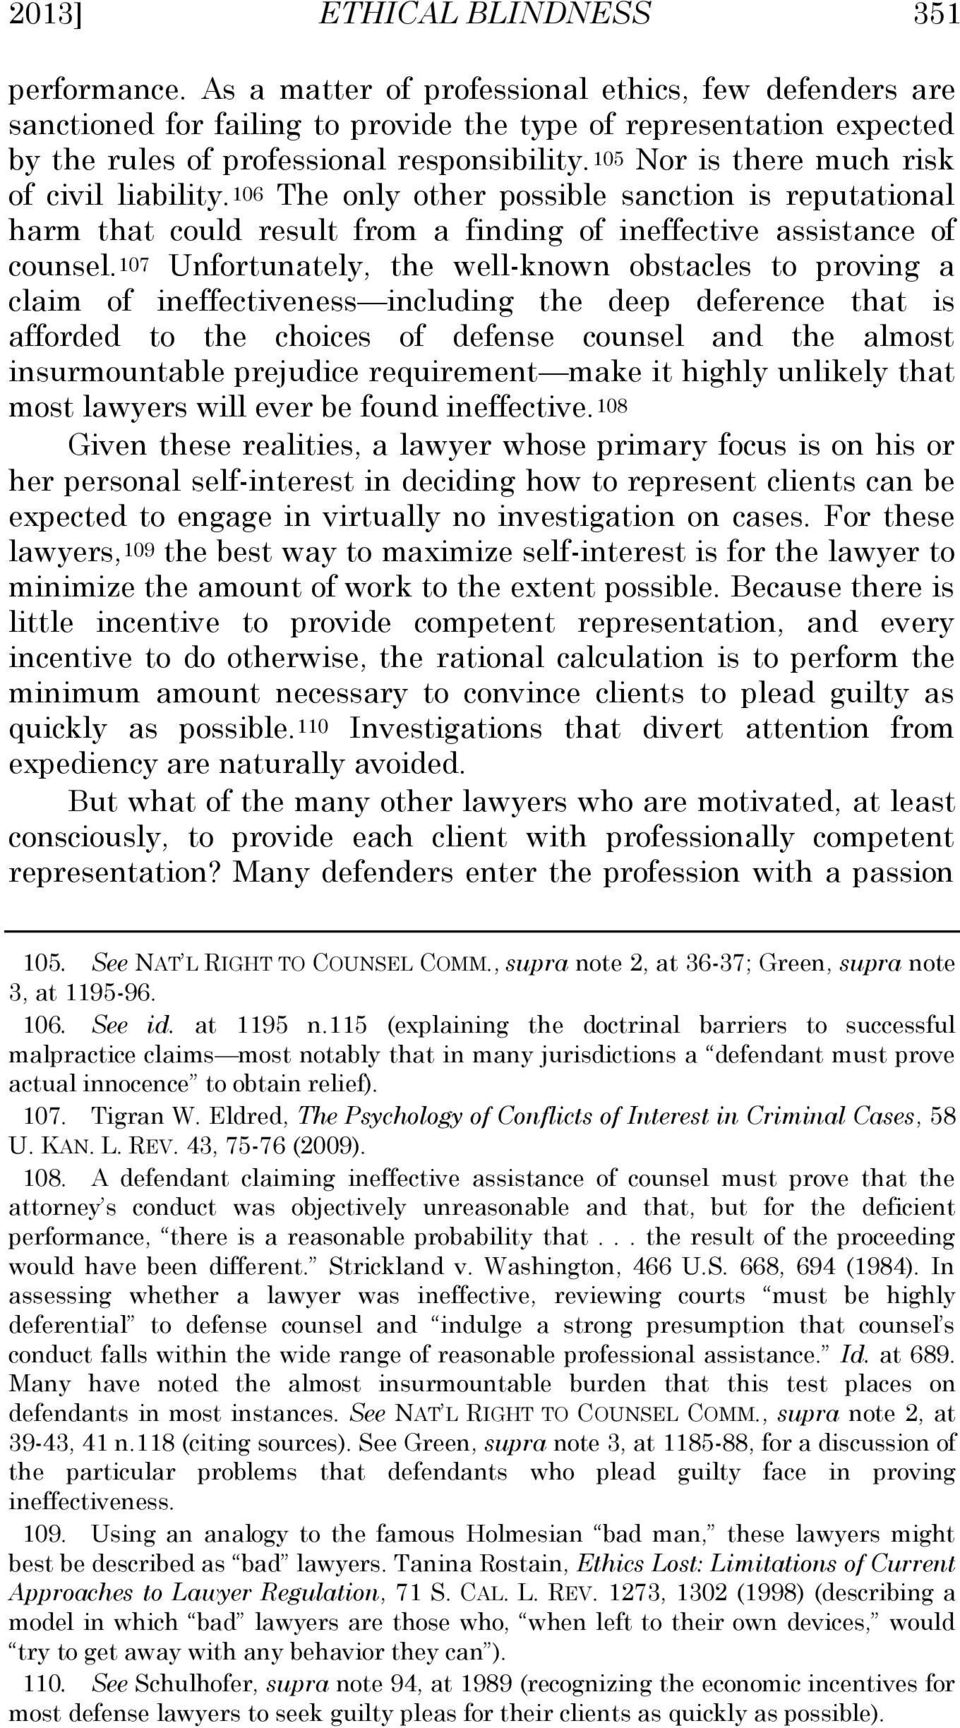 105 Nor is there much risk of civil liability.106 The only other possible sanction is reputational harm that could result from a finding of ineffective assistance of counsel.